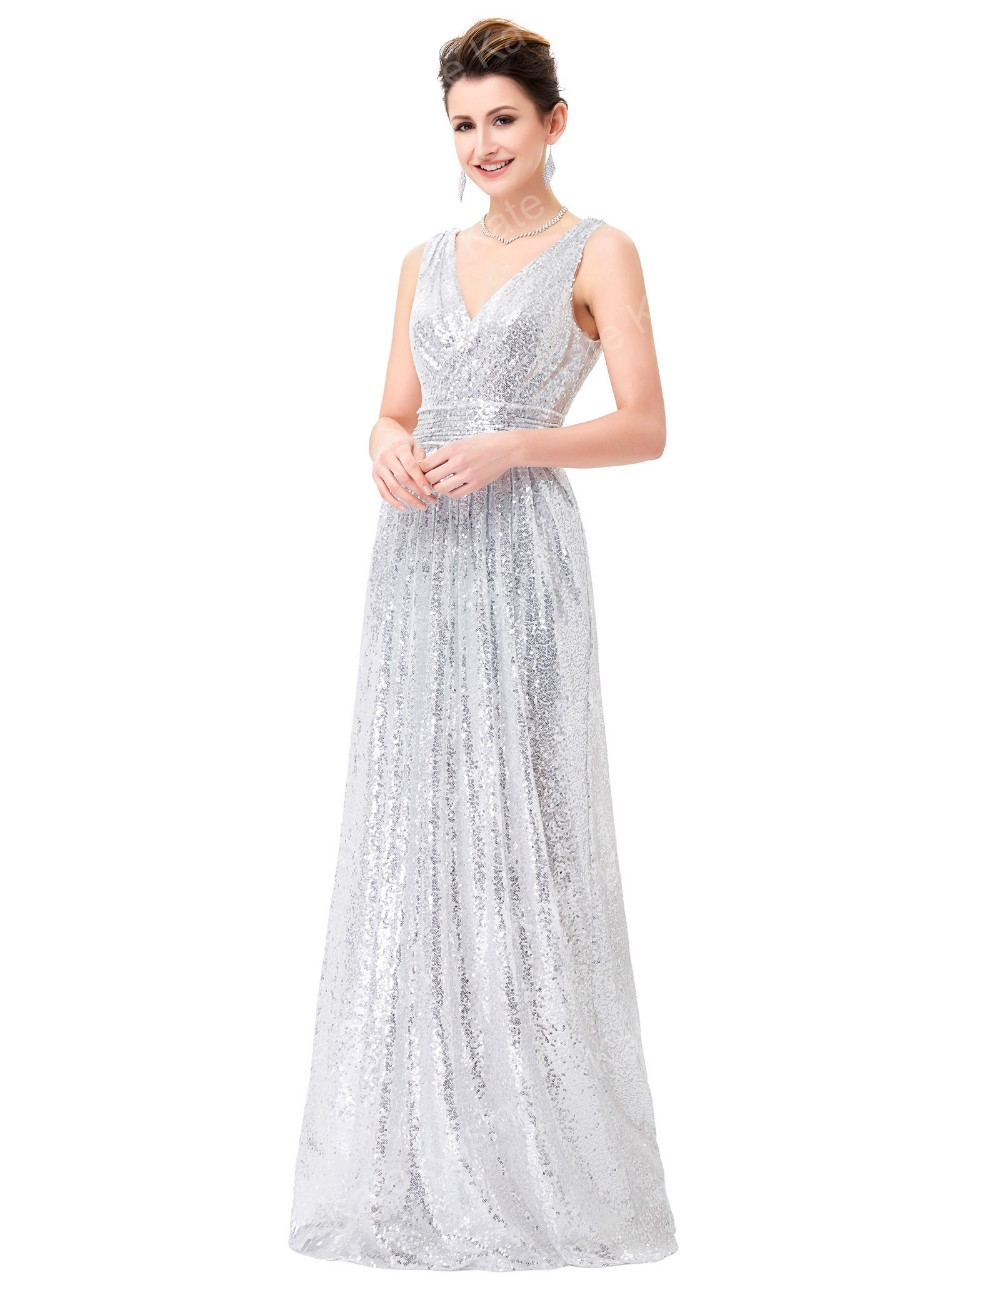 Kate Kasin Sexy Sleeveless V-Neck Silver Shining Sequined Long Prom Party Dress KK000199-3